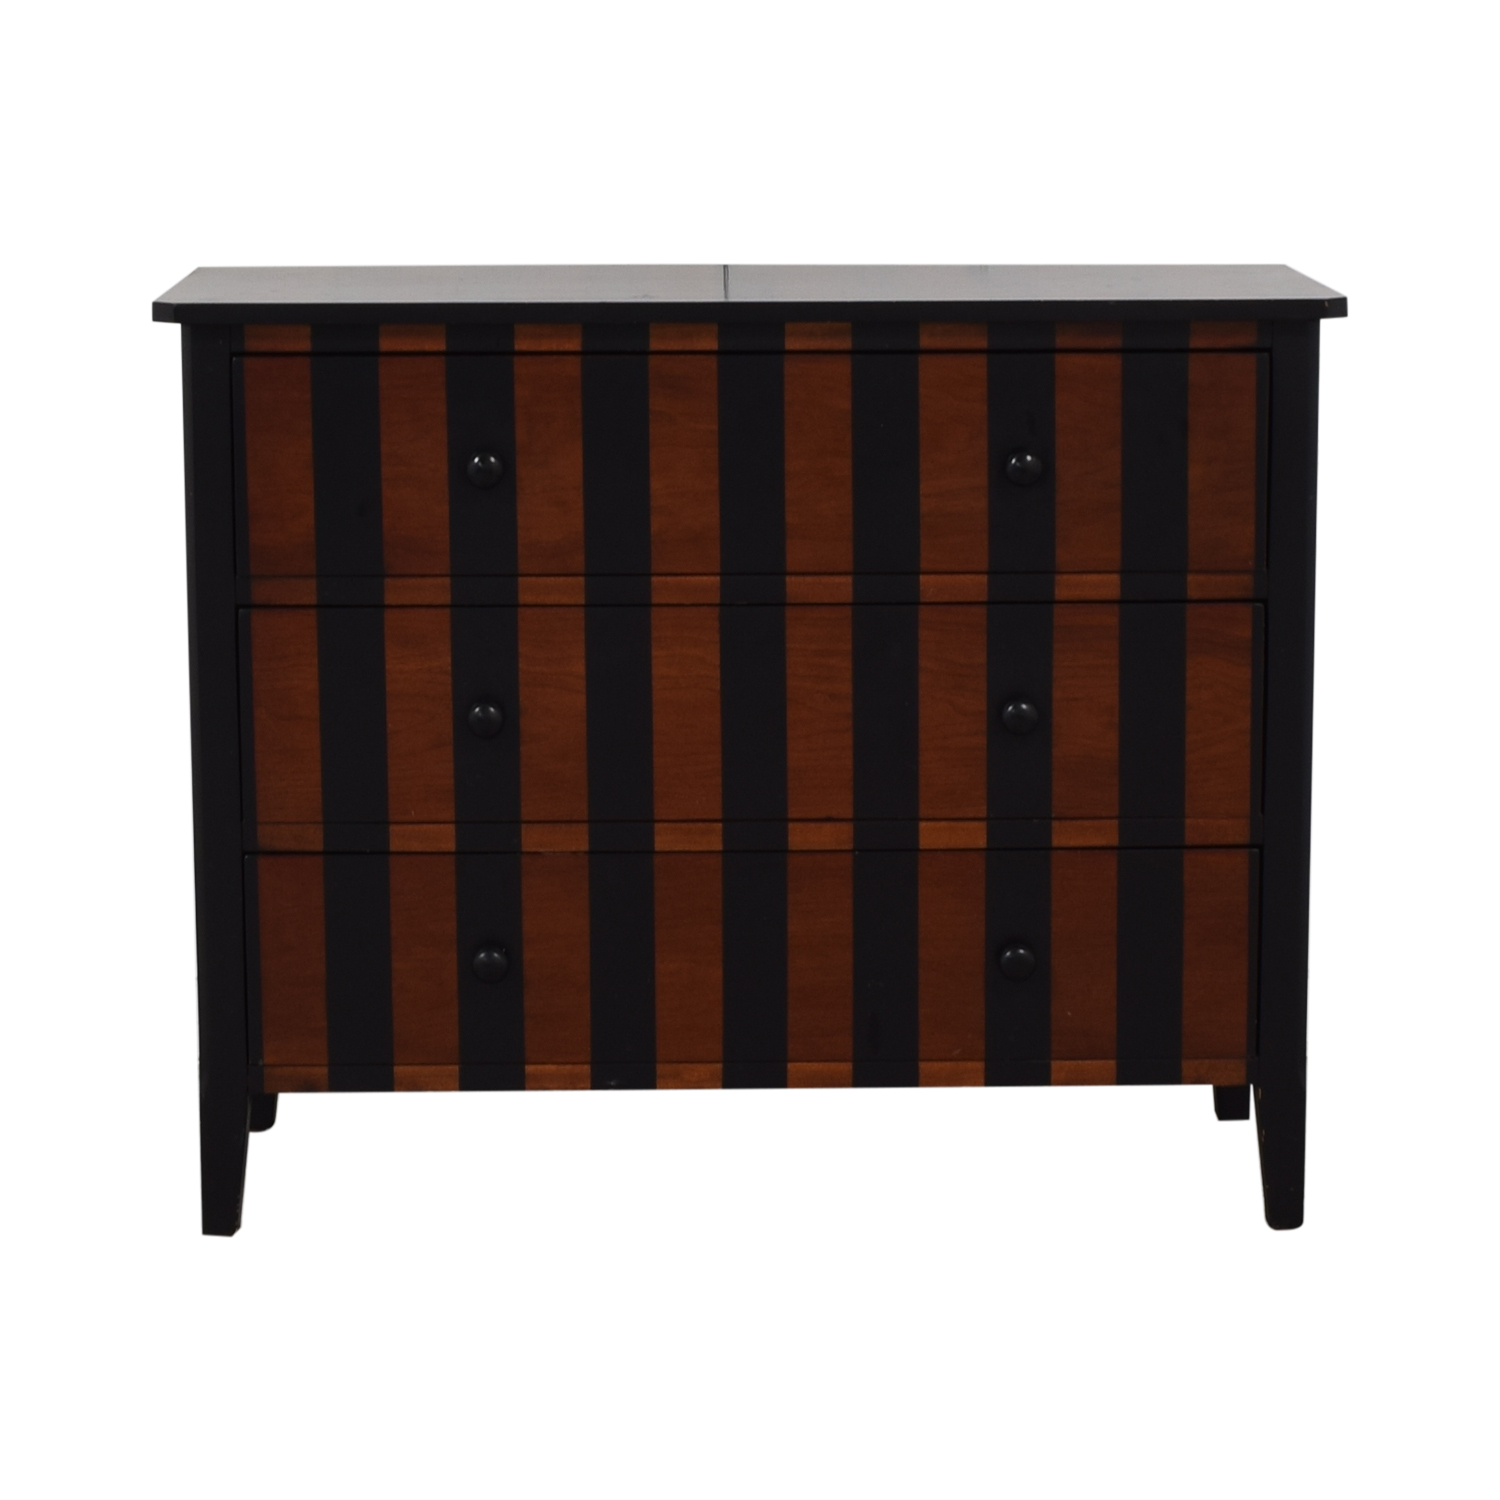 Bassett Furniture Bassett Furniture Striped Three-Drawer Dresser for sale